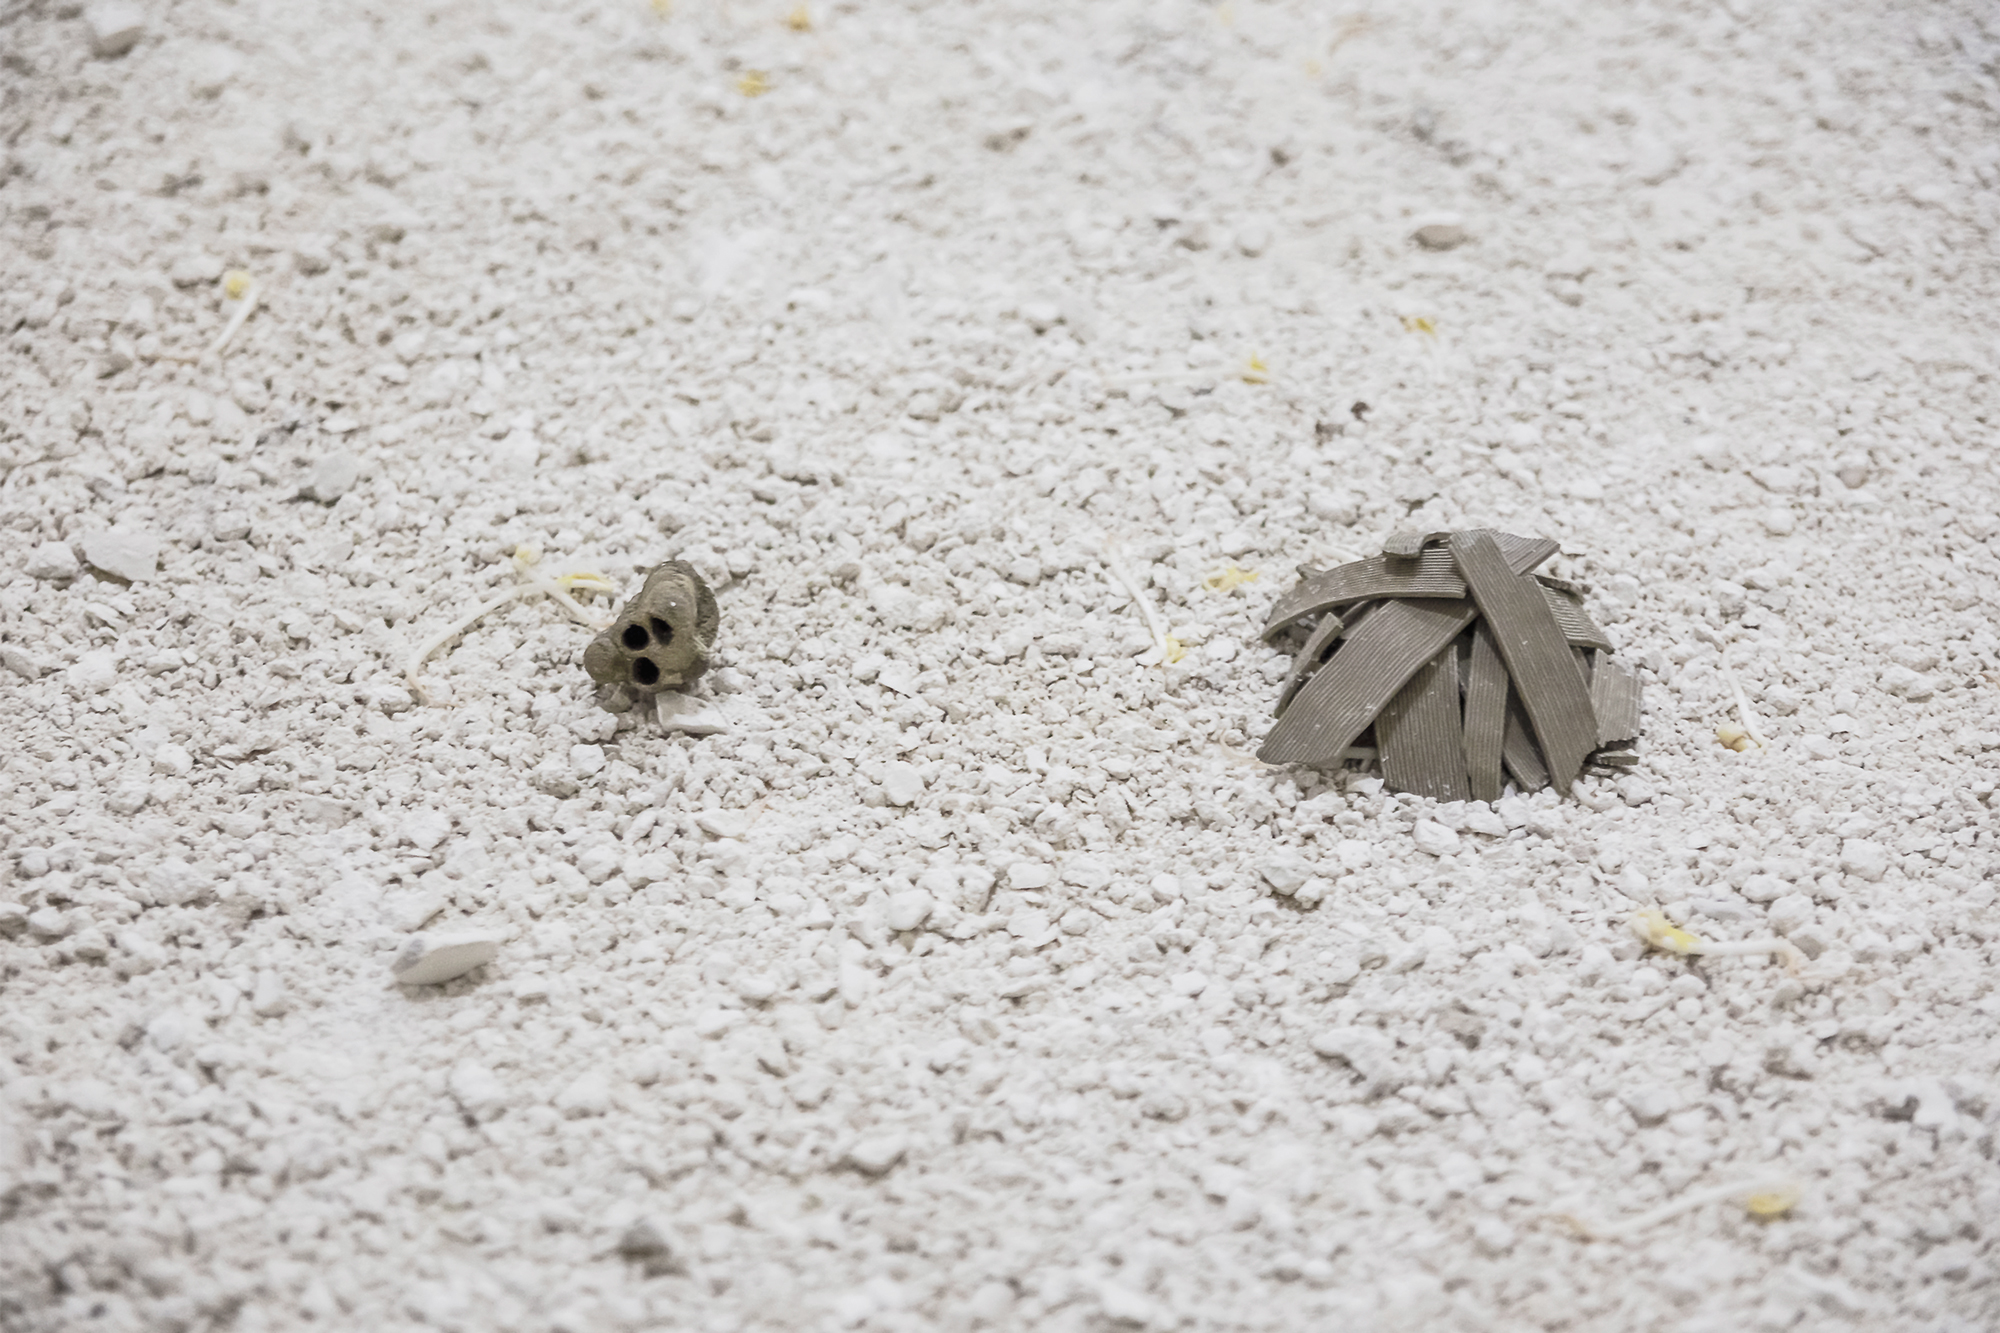 il chiaritoio,  mud wasp nest, 3D printed mud fragments, travertine dust, sprouts